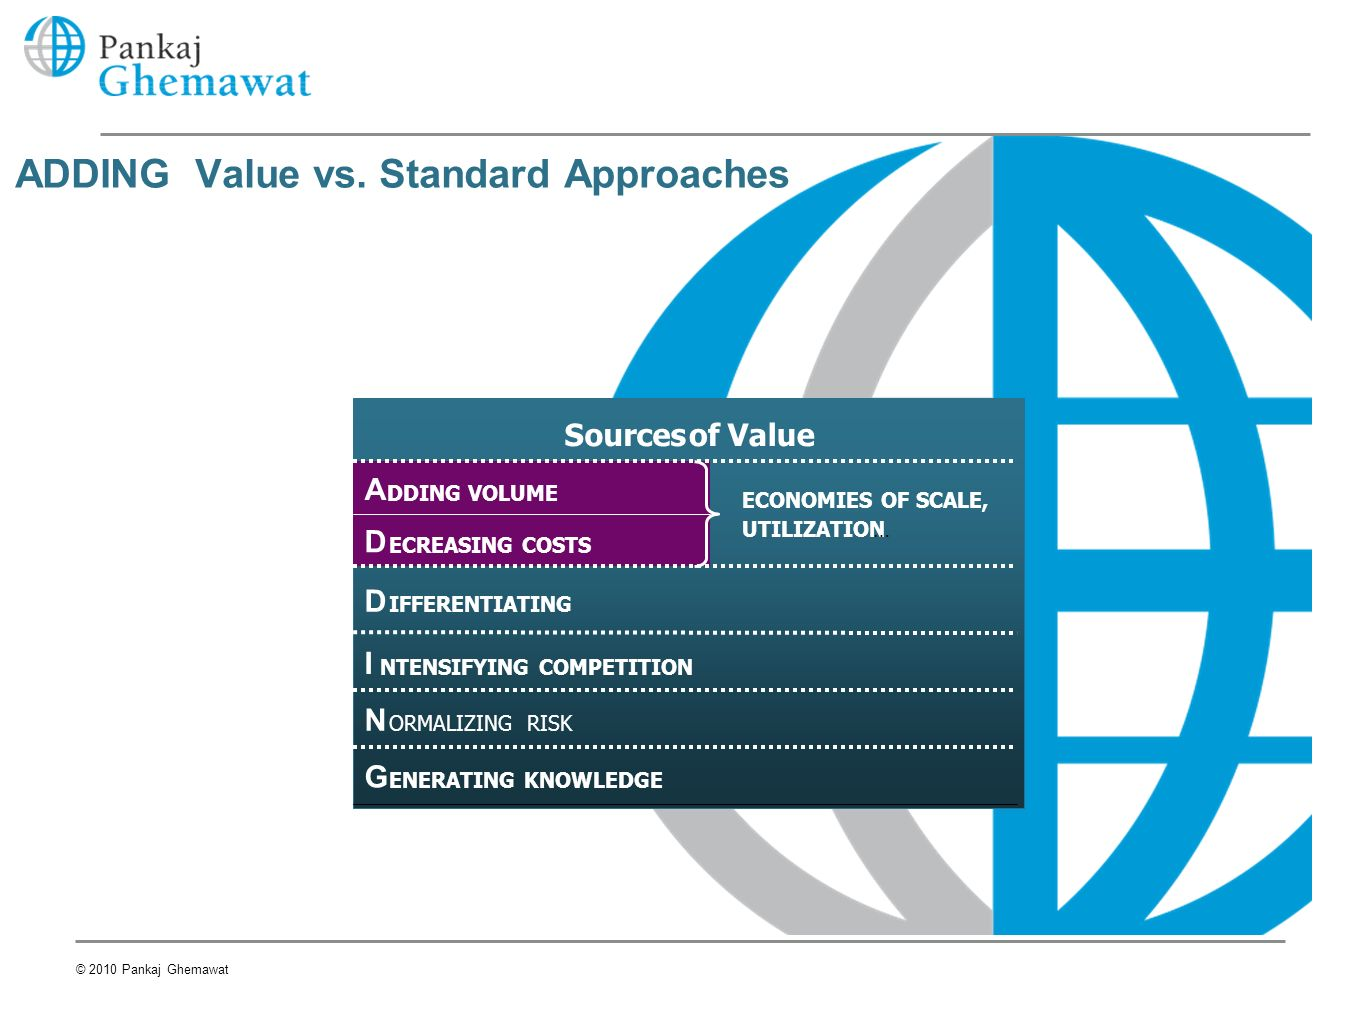 ADDING Value vs. Standard Approaches